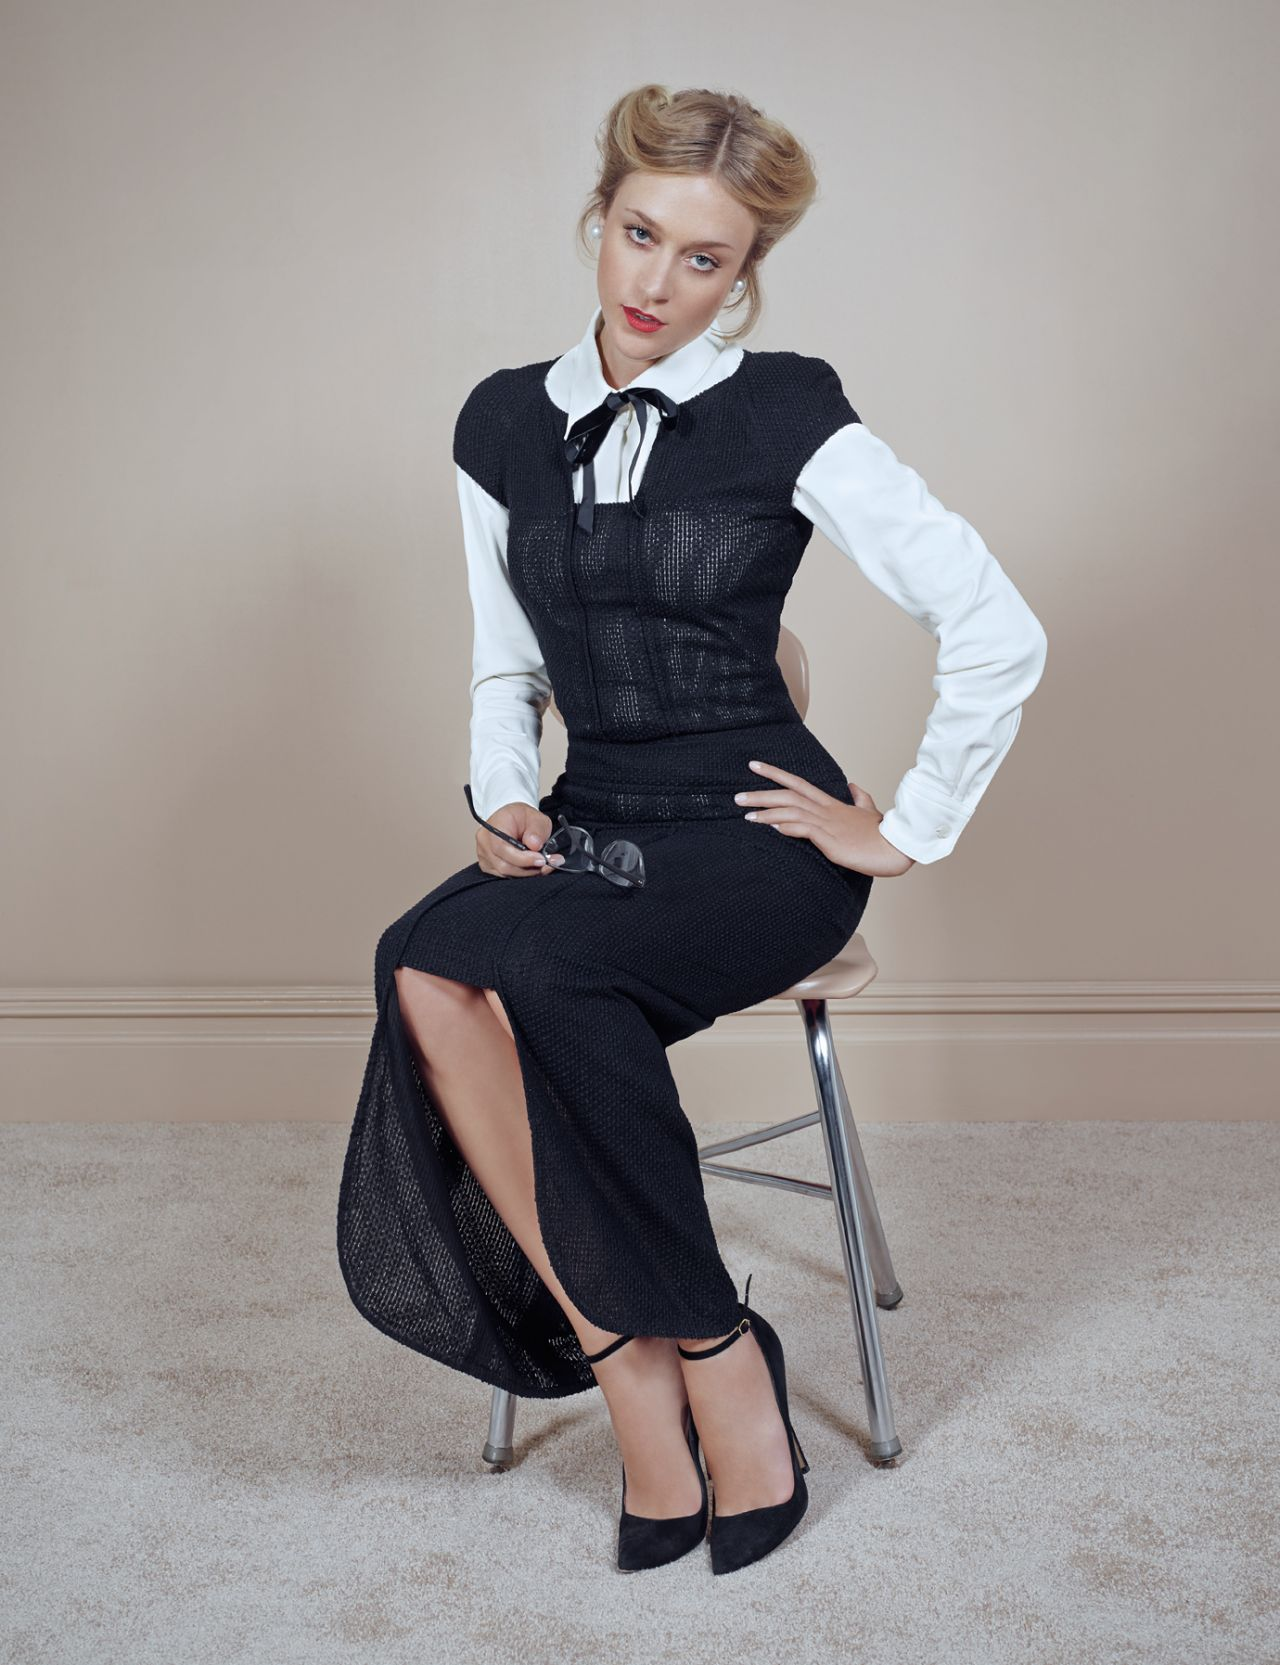 Chloe Sevigny - David Dunan Photoshoot for Town & Country, November 2013